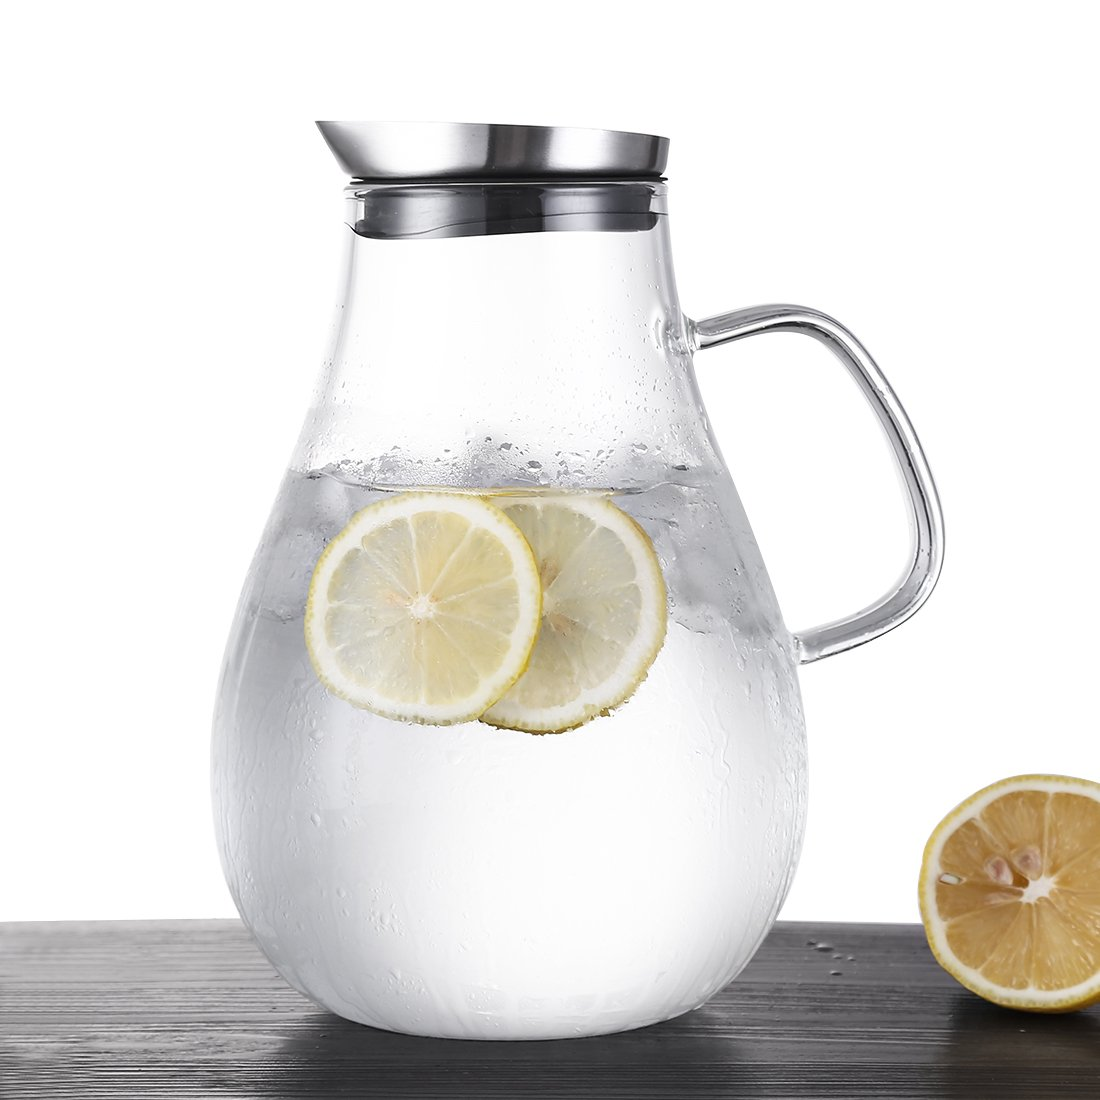 ONEISALL 85 Ounces Large Heat Resistant Glass Beverage Pitcher with Stainless Steel Lid, Borosilicate Water Carafe with Spout and Handle, Perfect for Homemade Juice & Iced Tea by Weisier (Image #2)